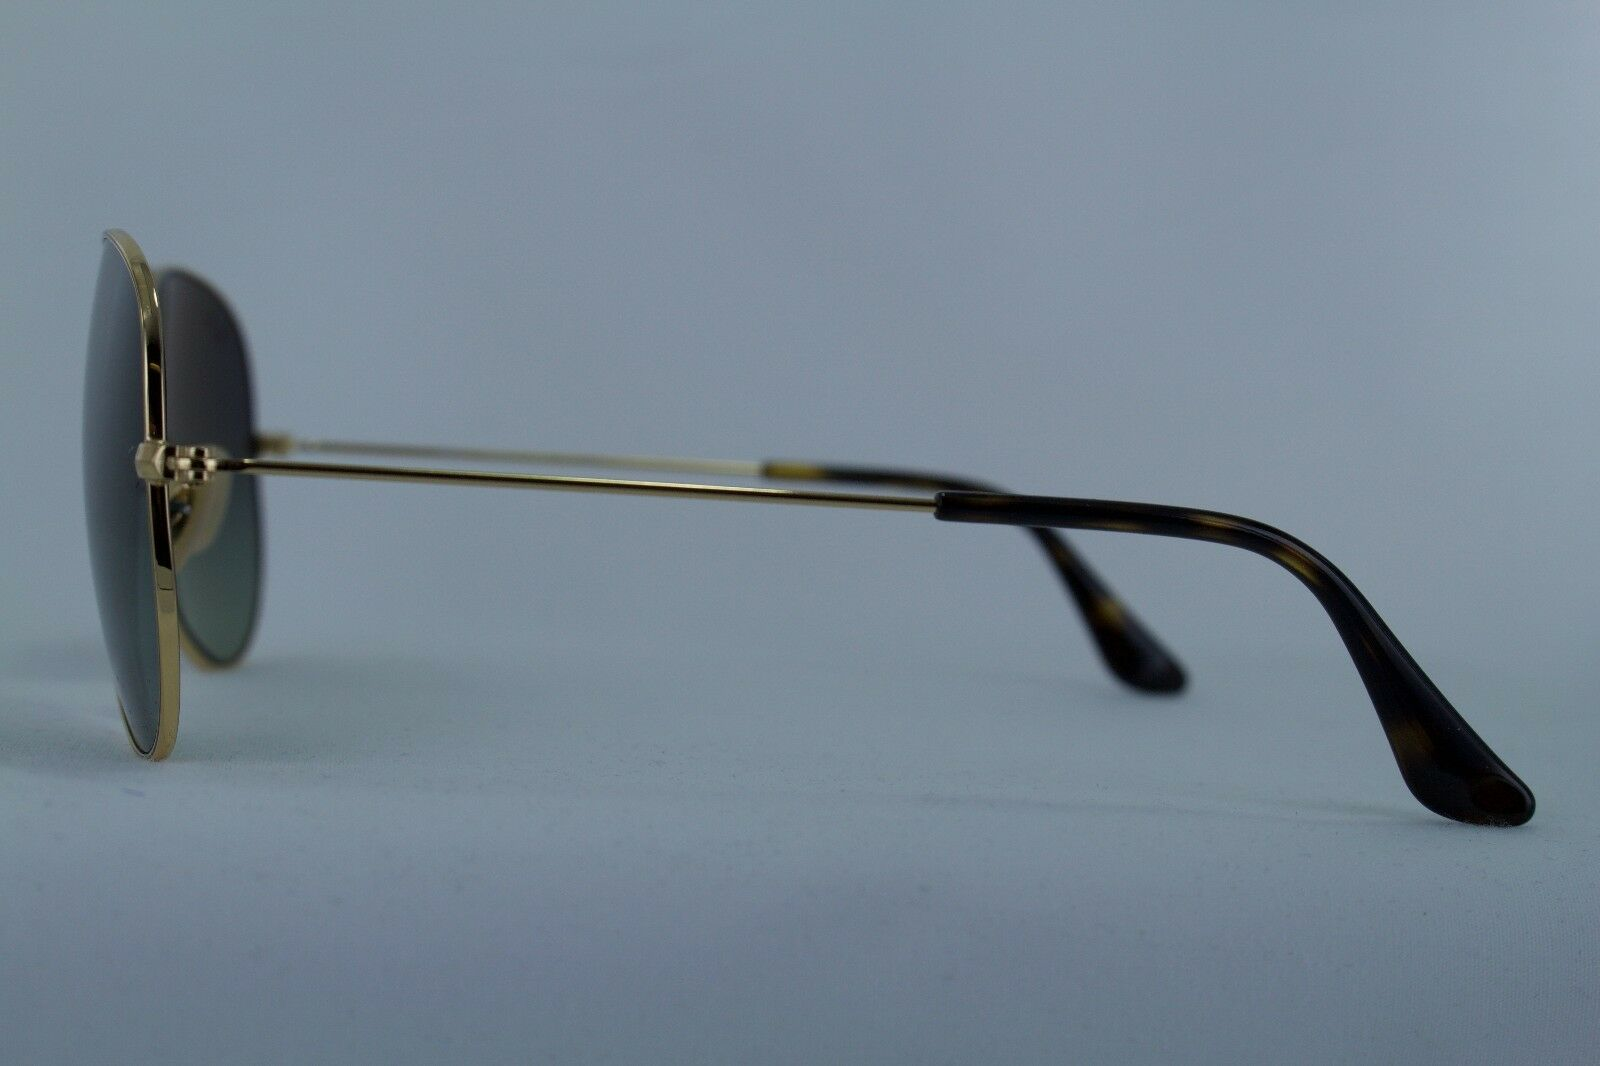 db1ebbf97c524 ... new zealand sunglasses ray ban aviator large metal rb3025 181 71 58  gold ebay eea3e 1b751 ...